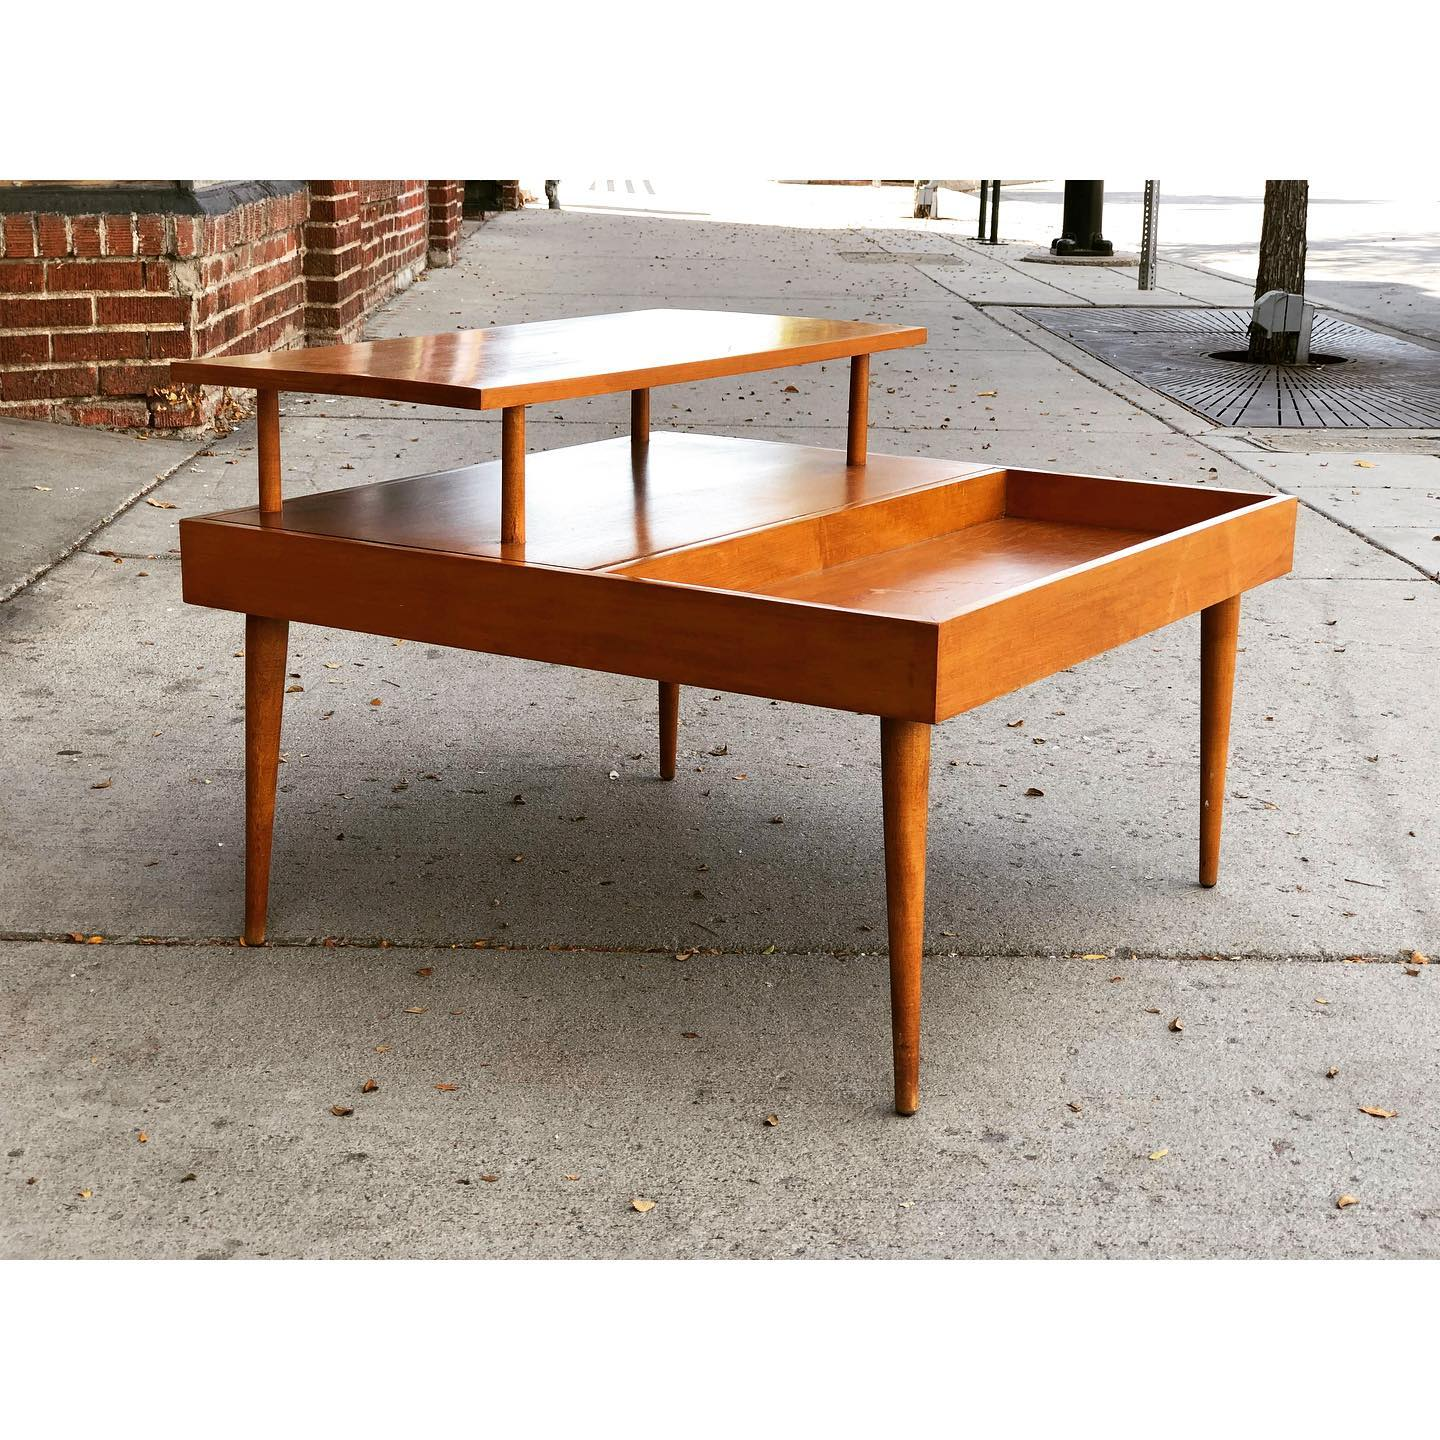 Rare maple end table by Paul McCobb for Planner Group. USA